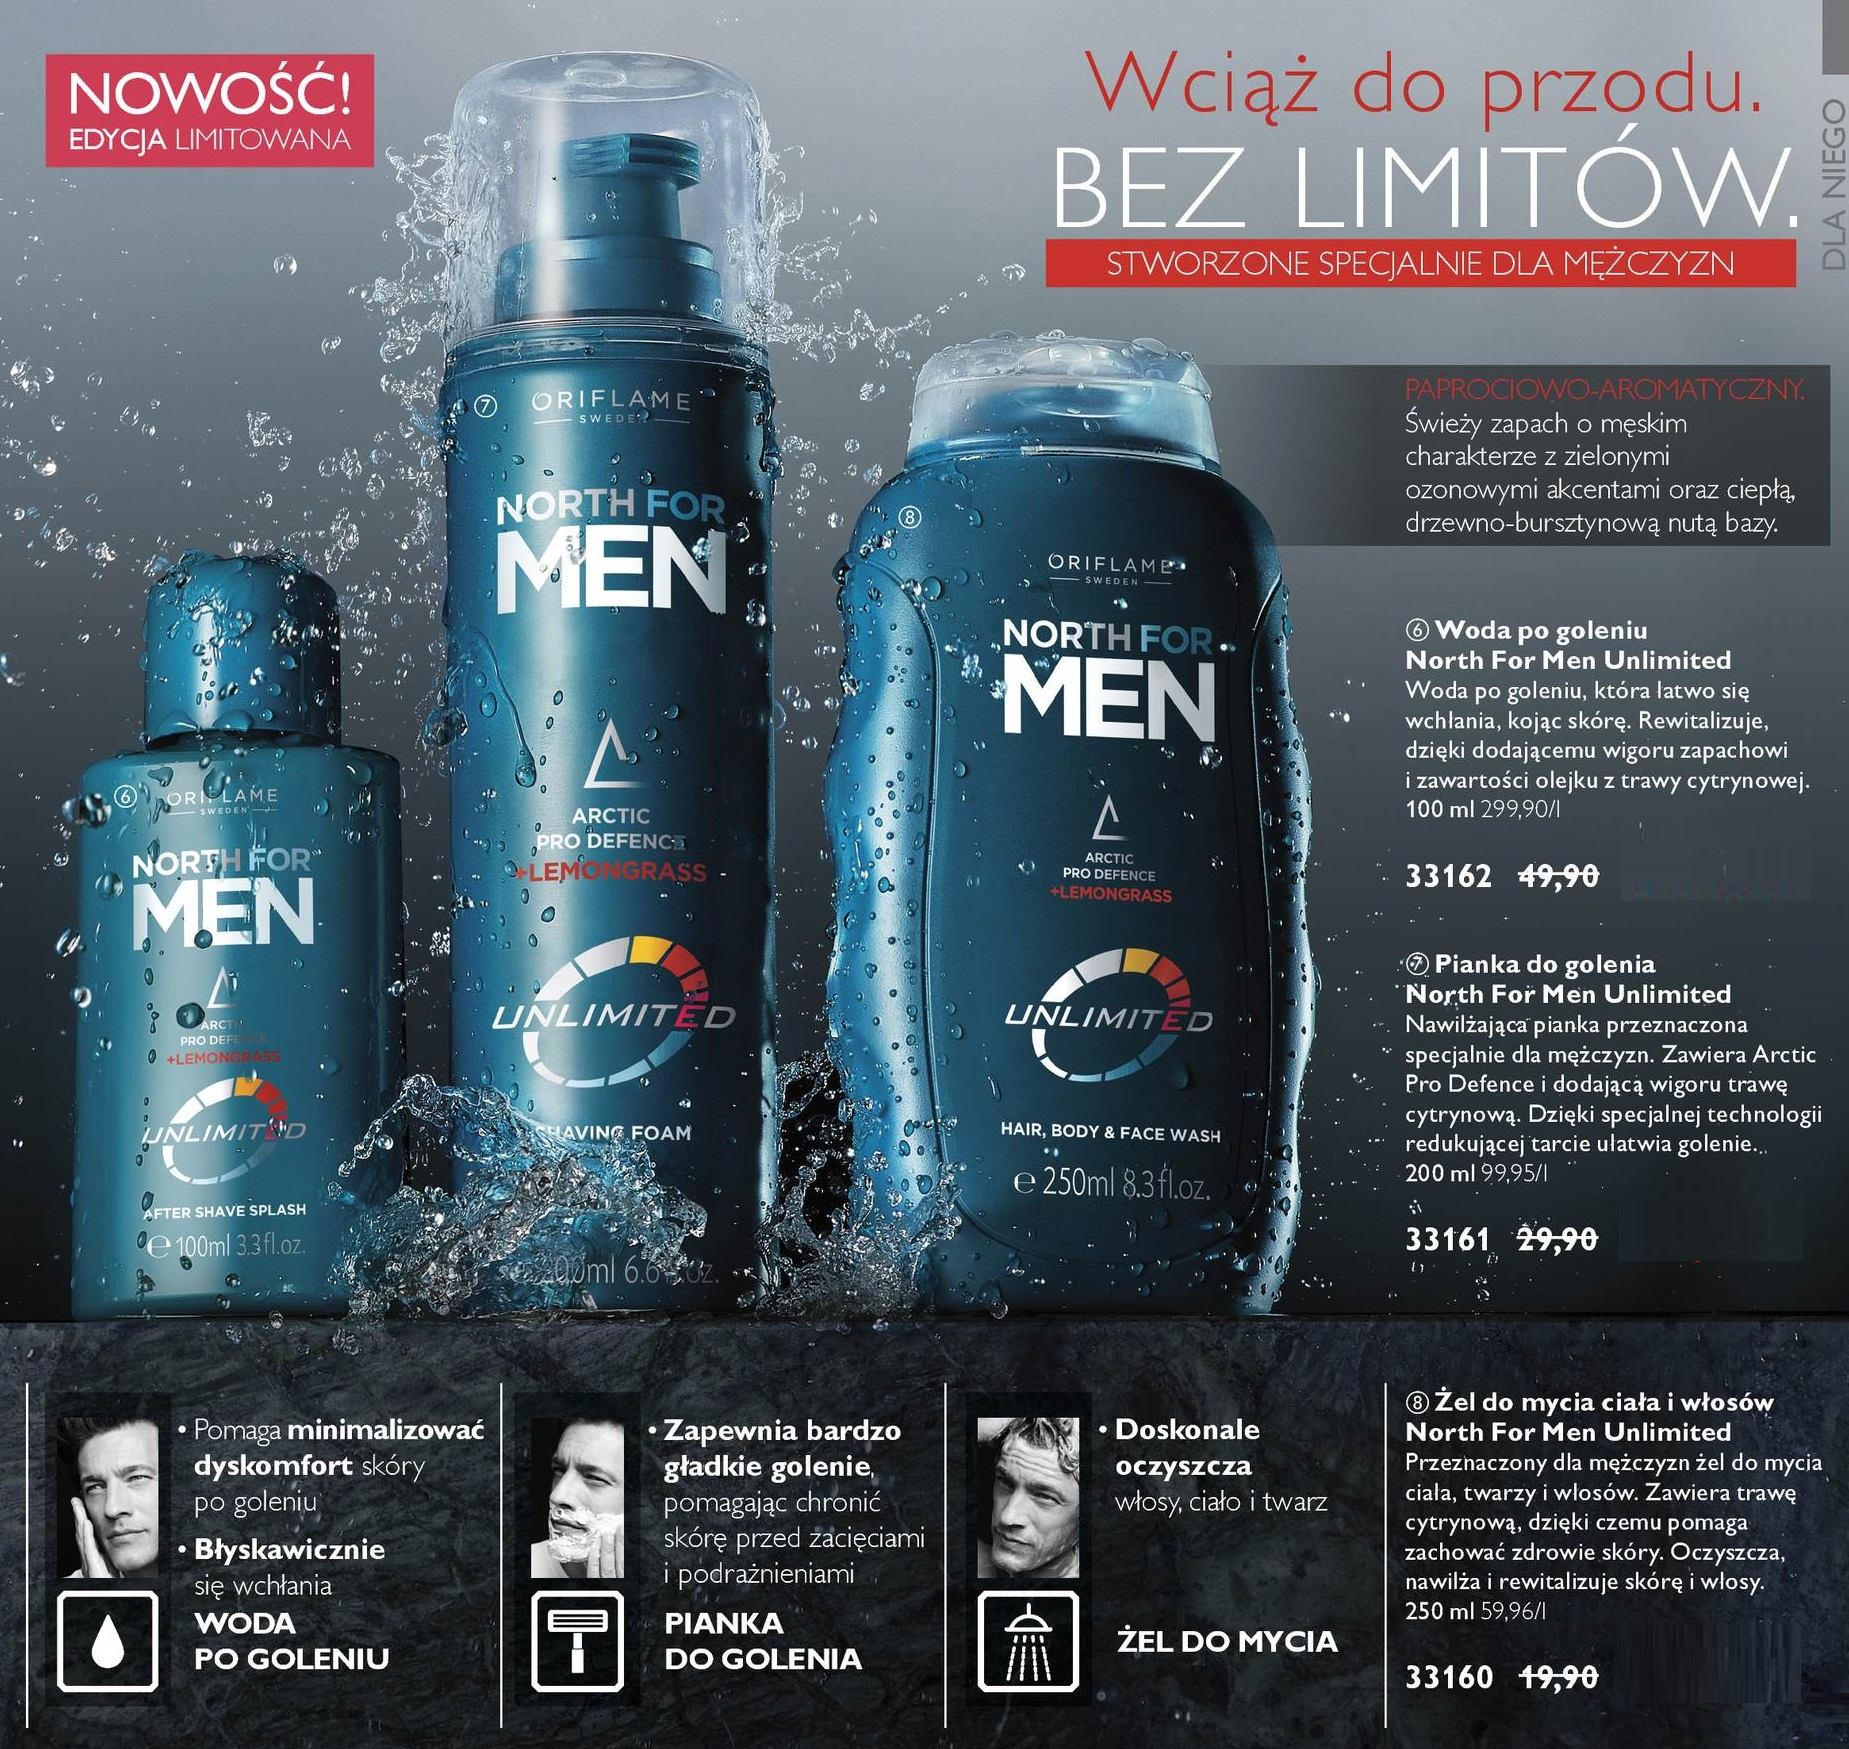 NORTH FOR MEN UNLIMITED